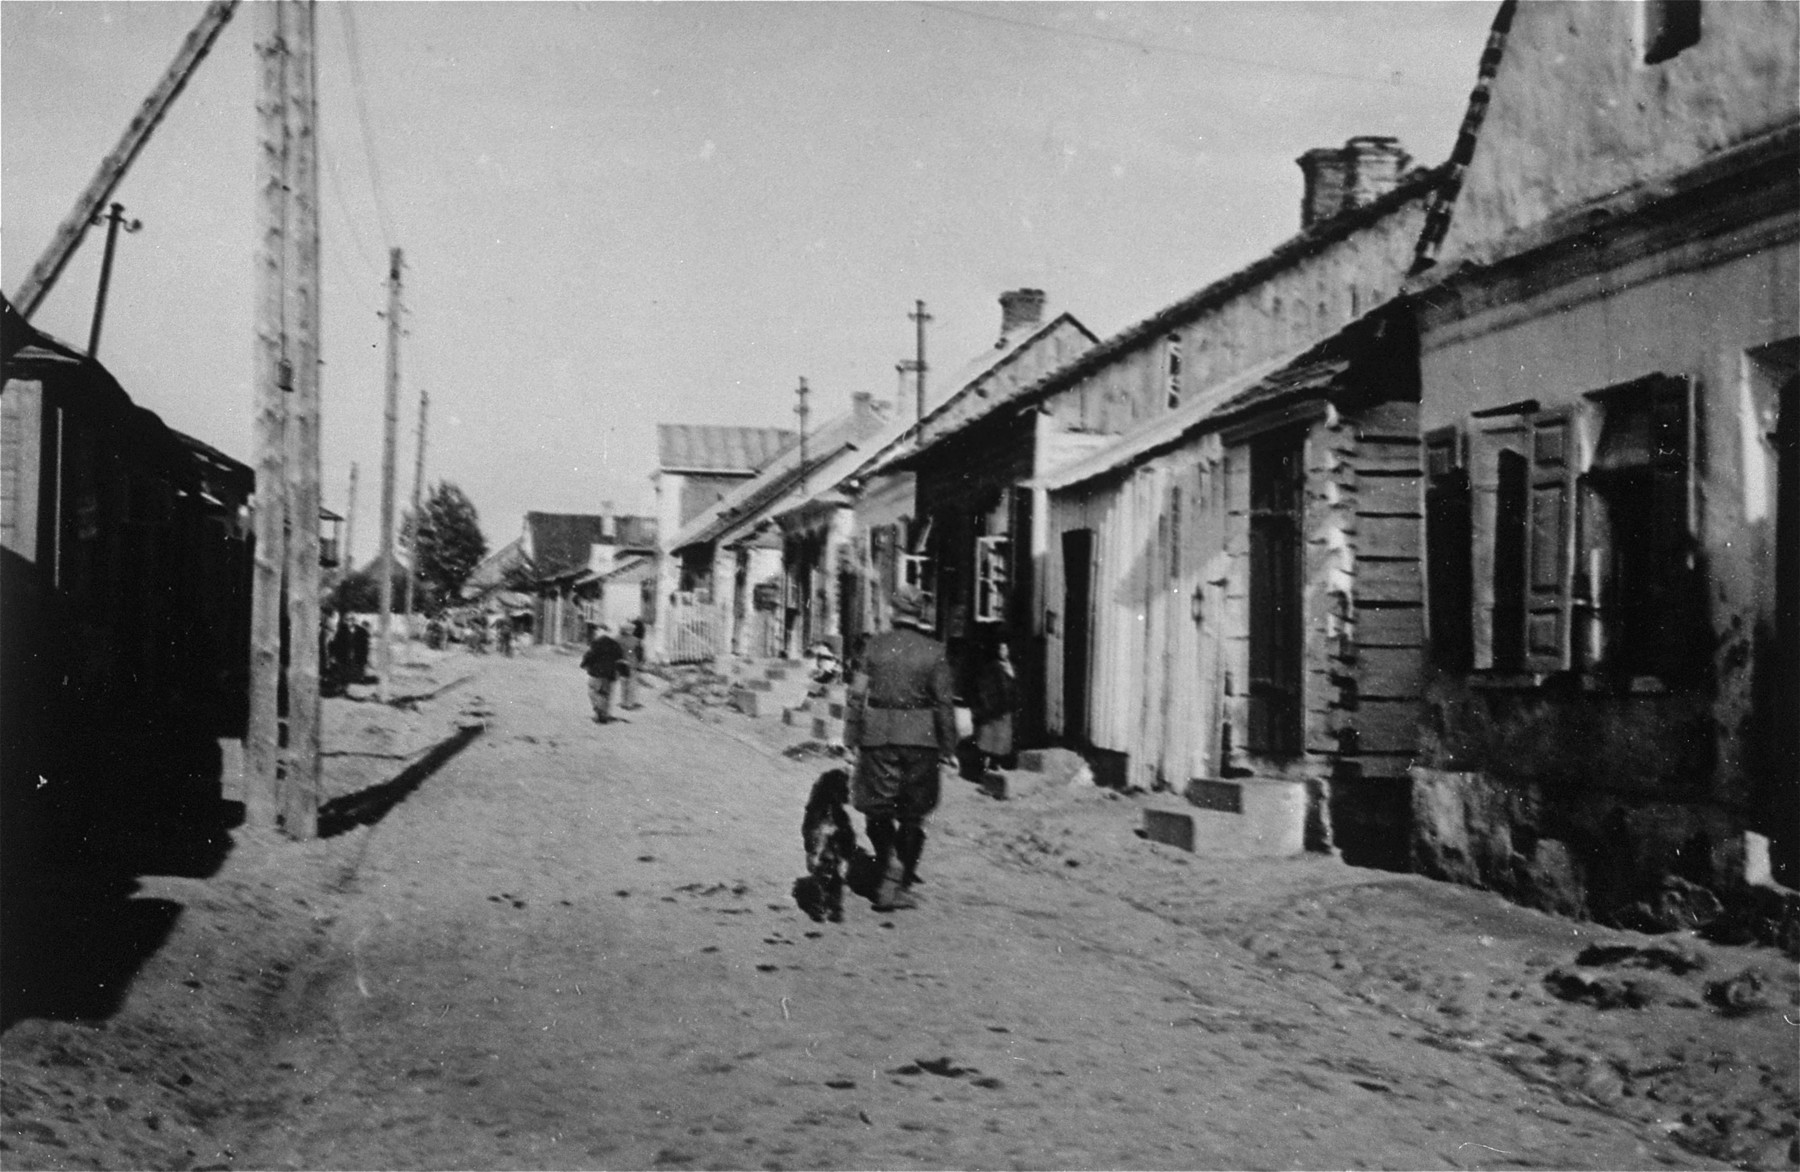 A German soldier patrols a street in the Konskowola ghetto with his dog.